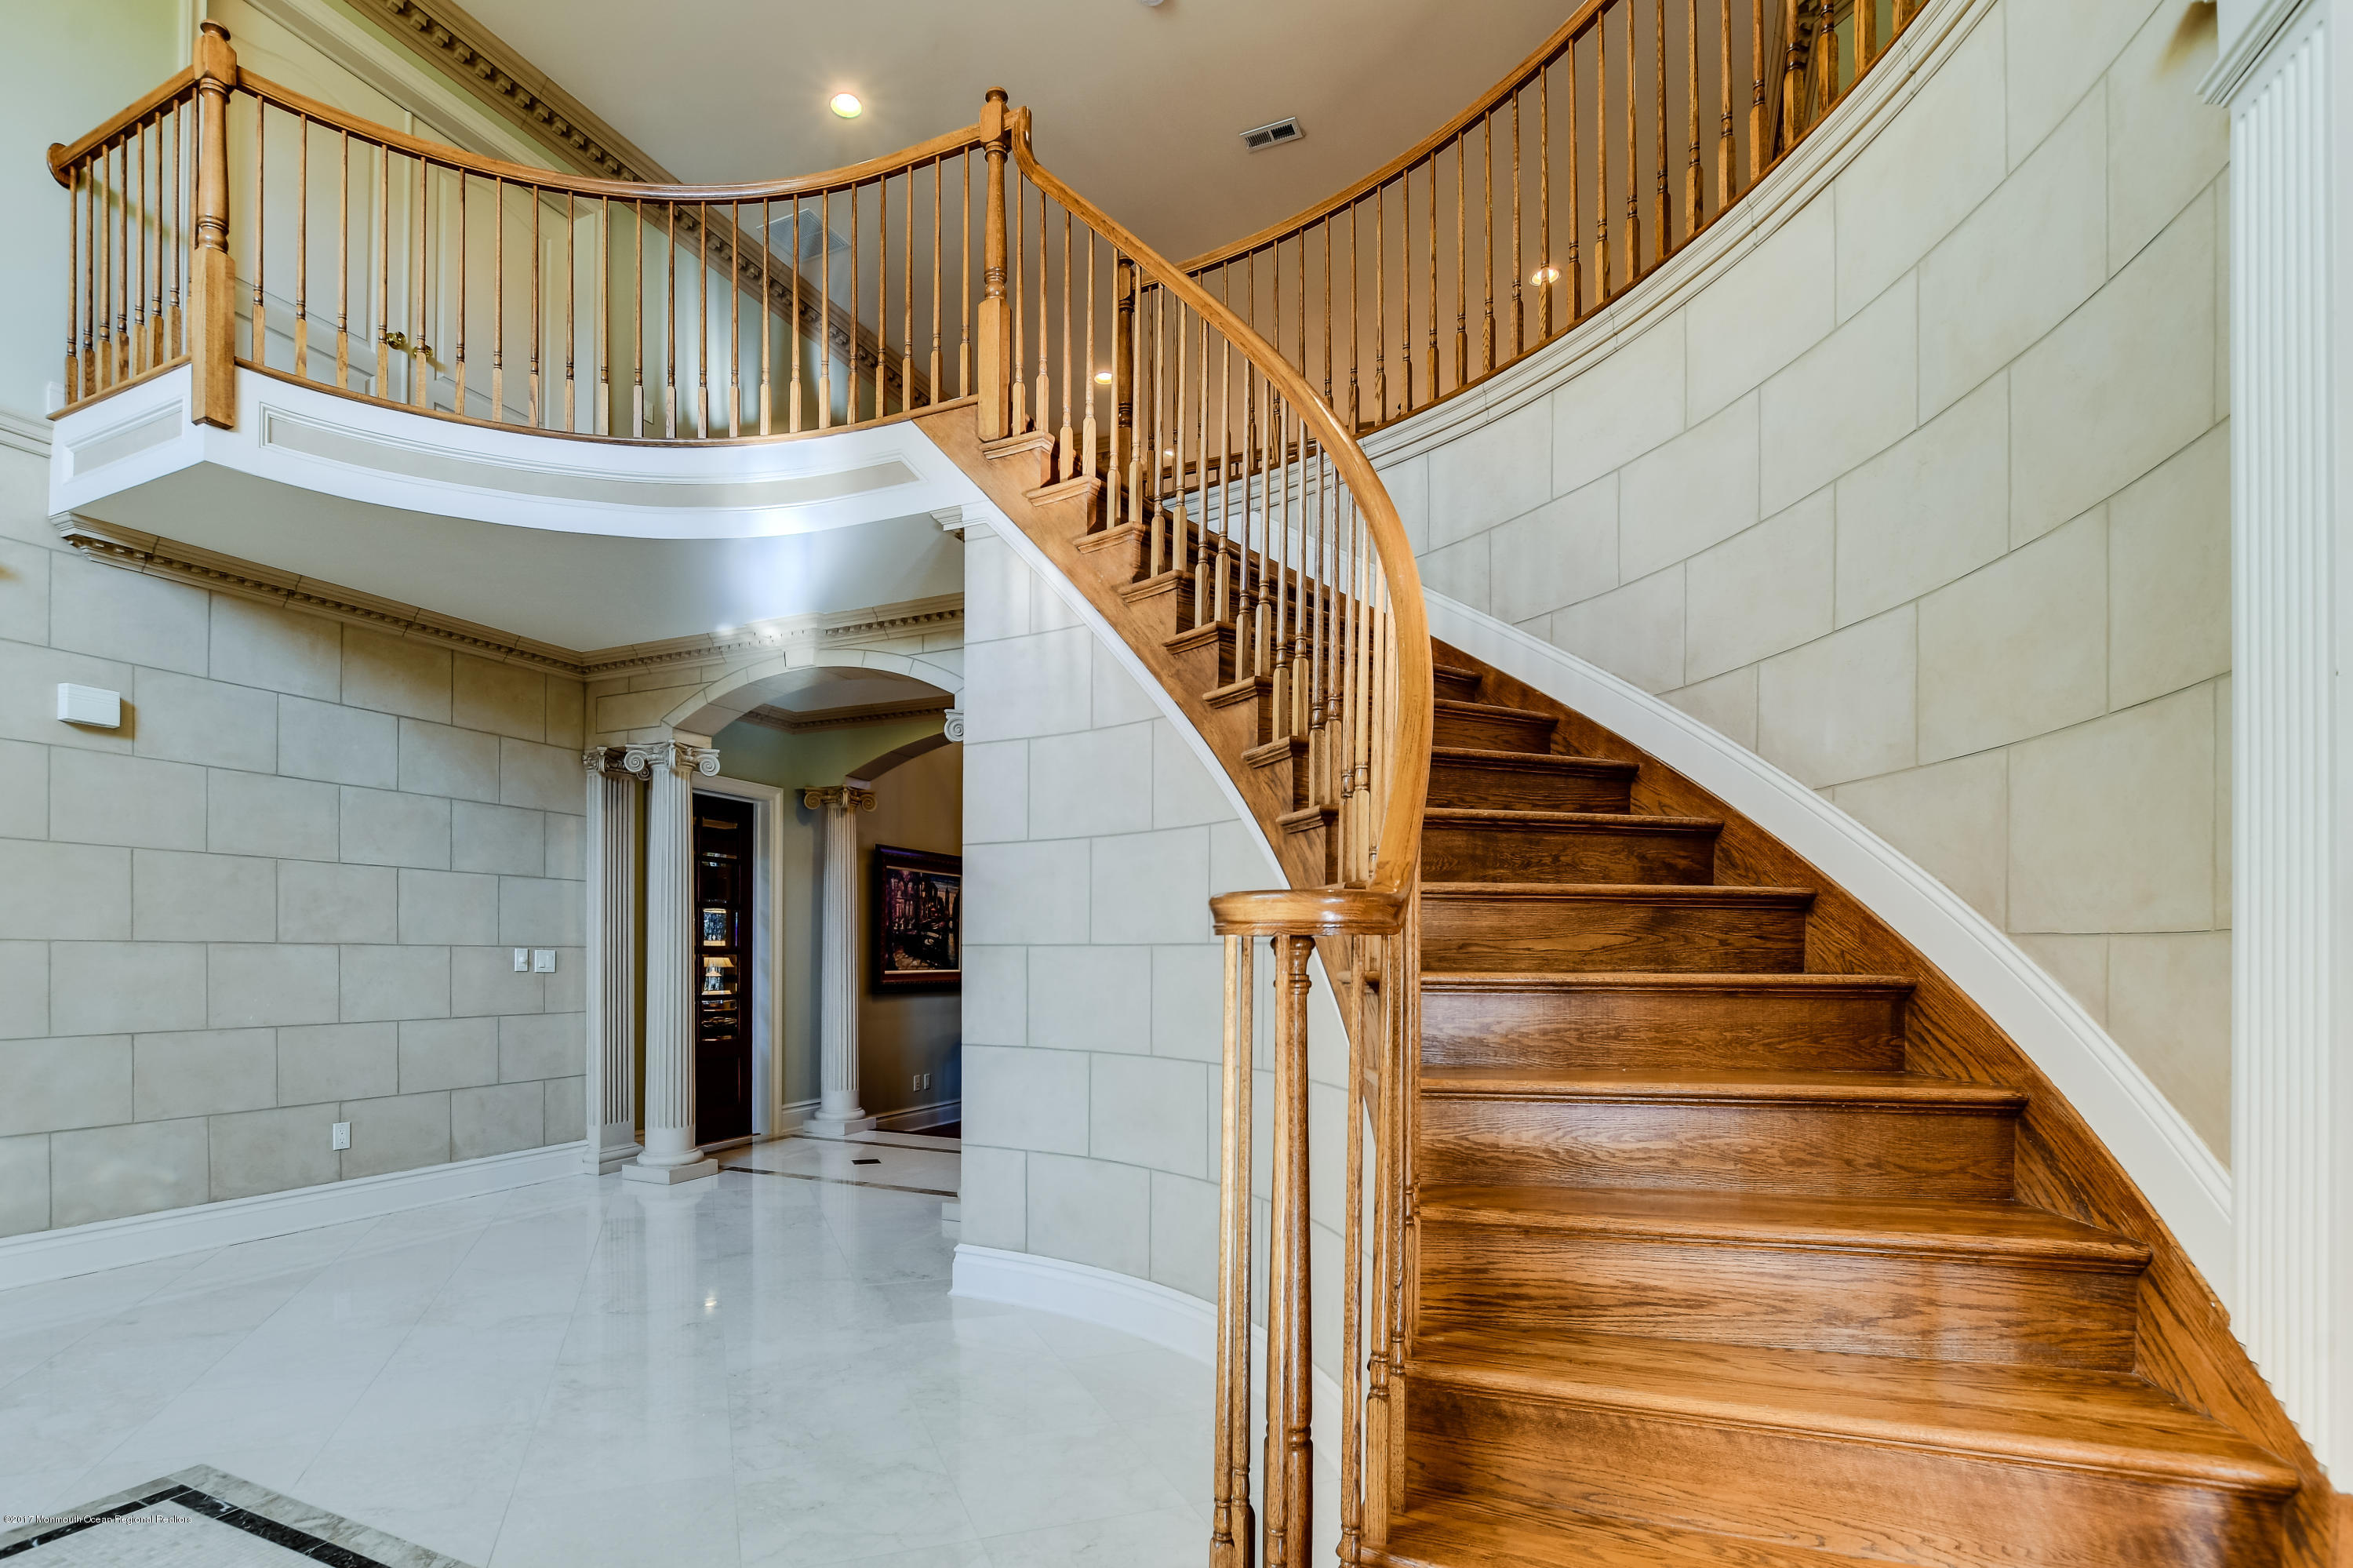 Staircase Leading to 2nd Level